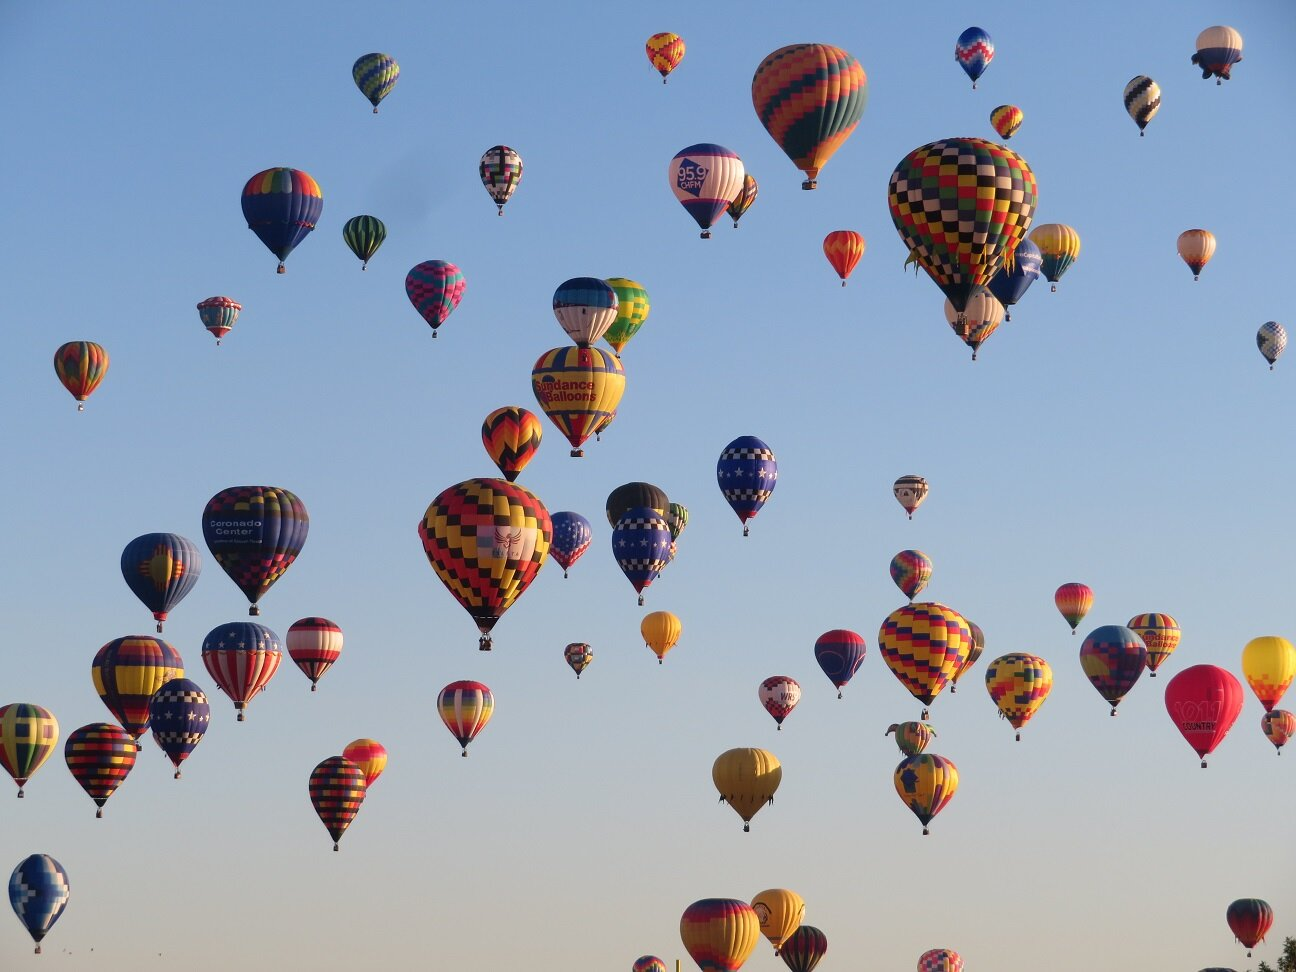 The sky was absolutely full of balloons